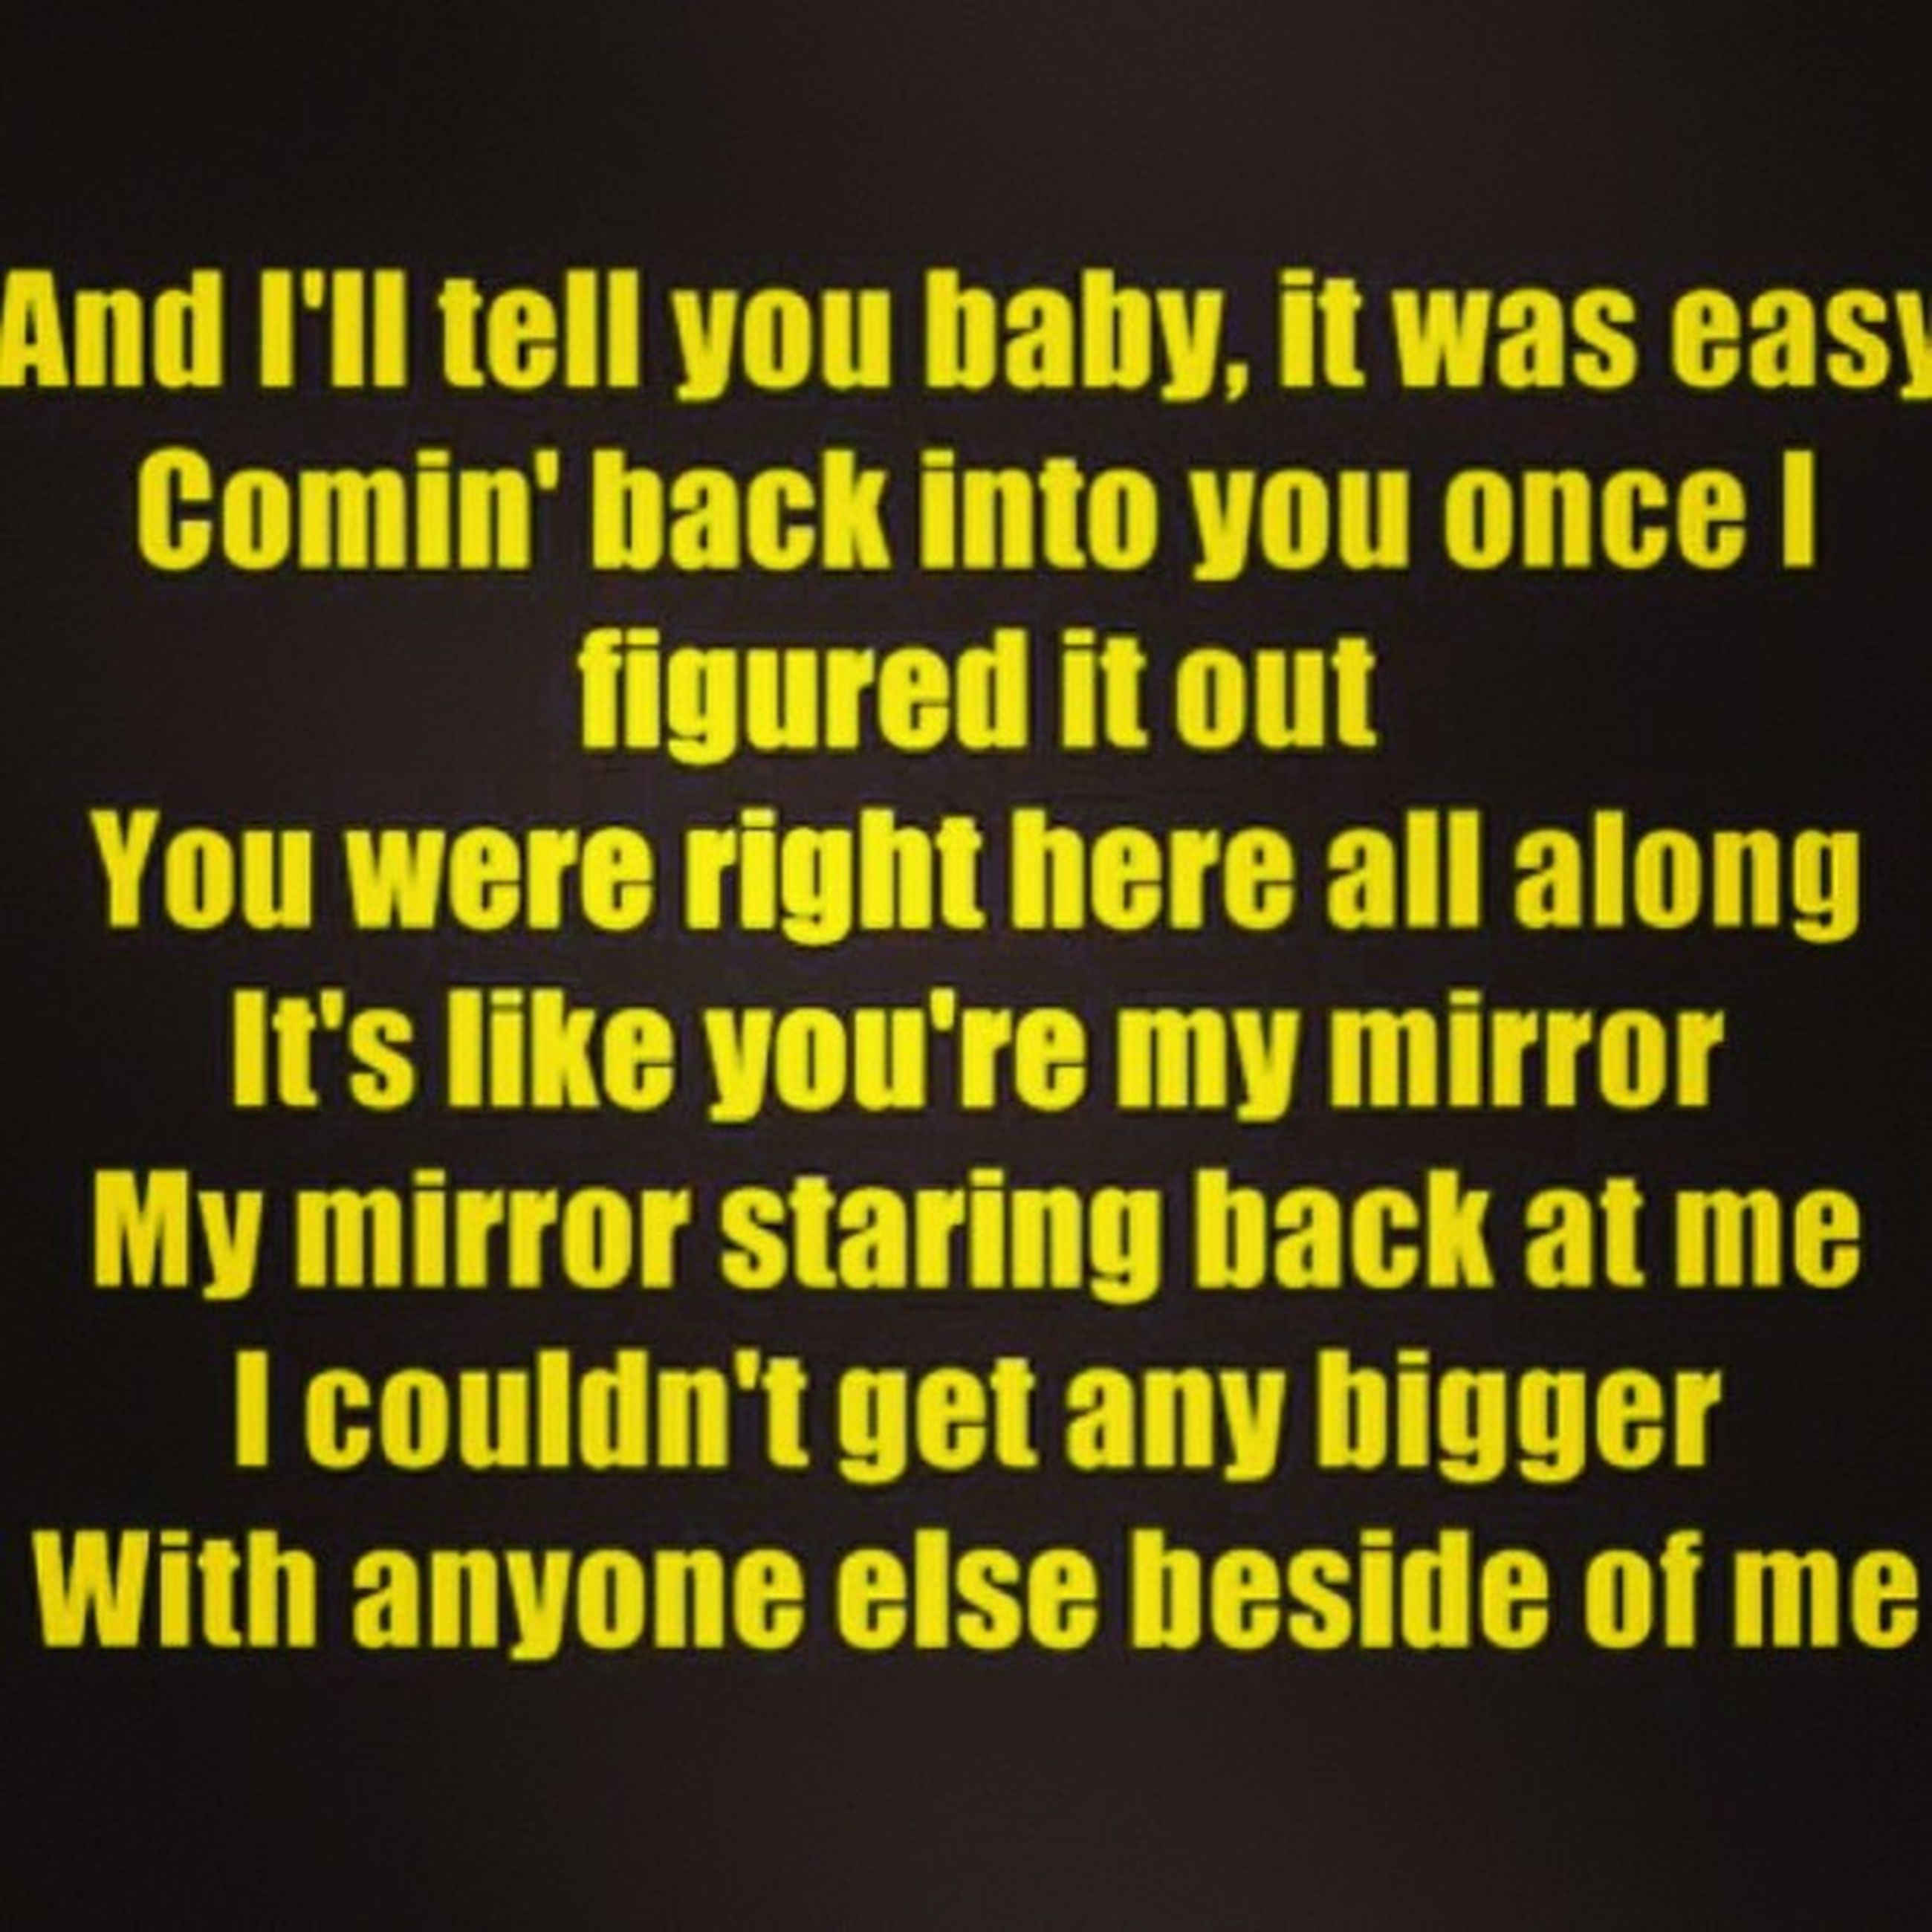 Can't stop listening to this song. Mirrors JT